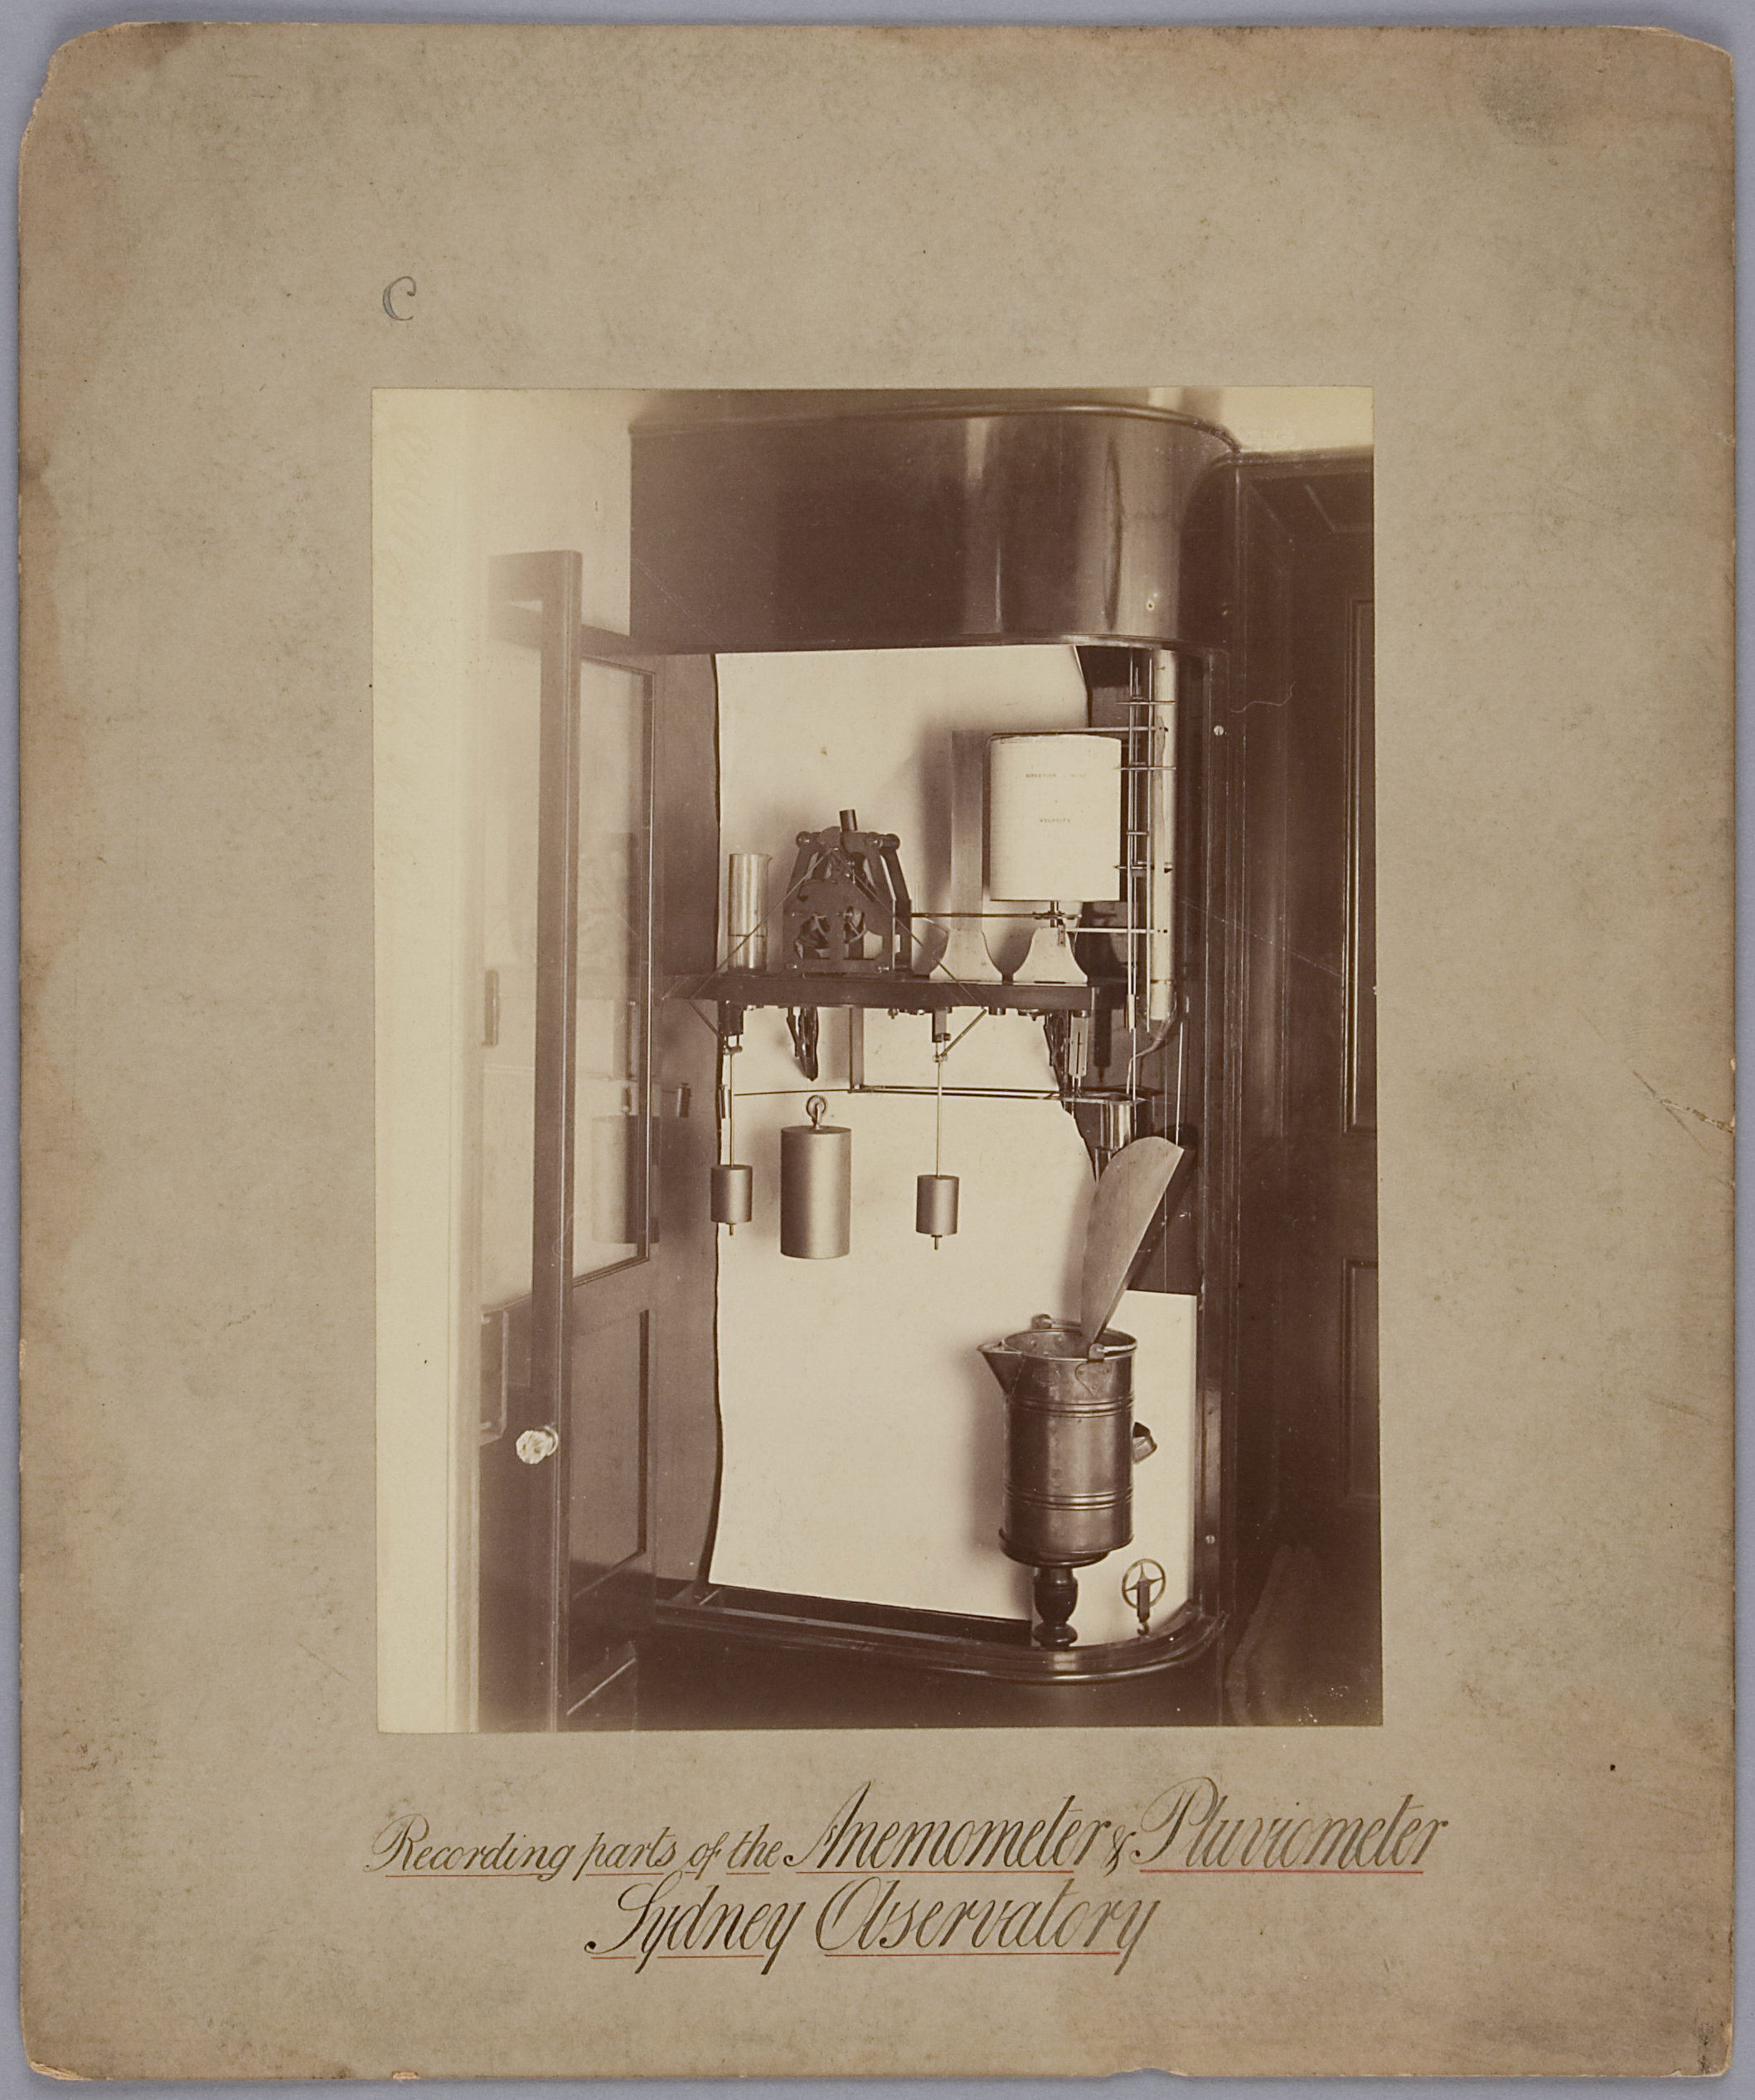 Sepia-toned photograph mounted on an aged piece of paper. The photograph depicts complex measuring machine, approximately as tall as a person, with various weights, pulleys, a water-collecting container and a rolled measurement chart.